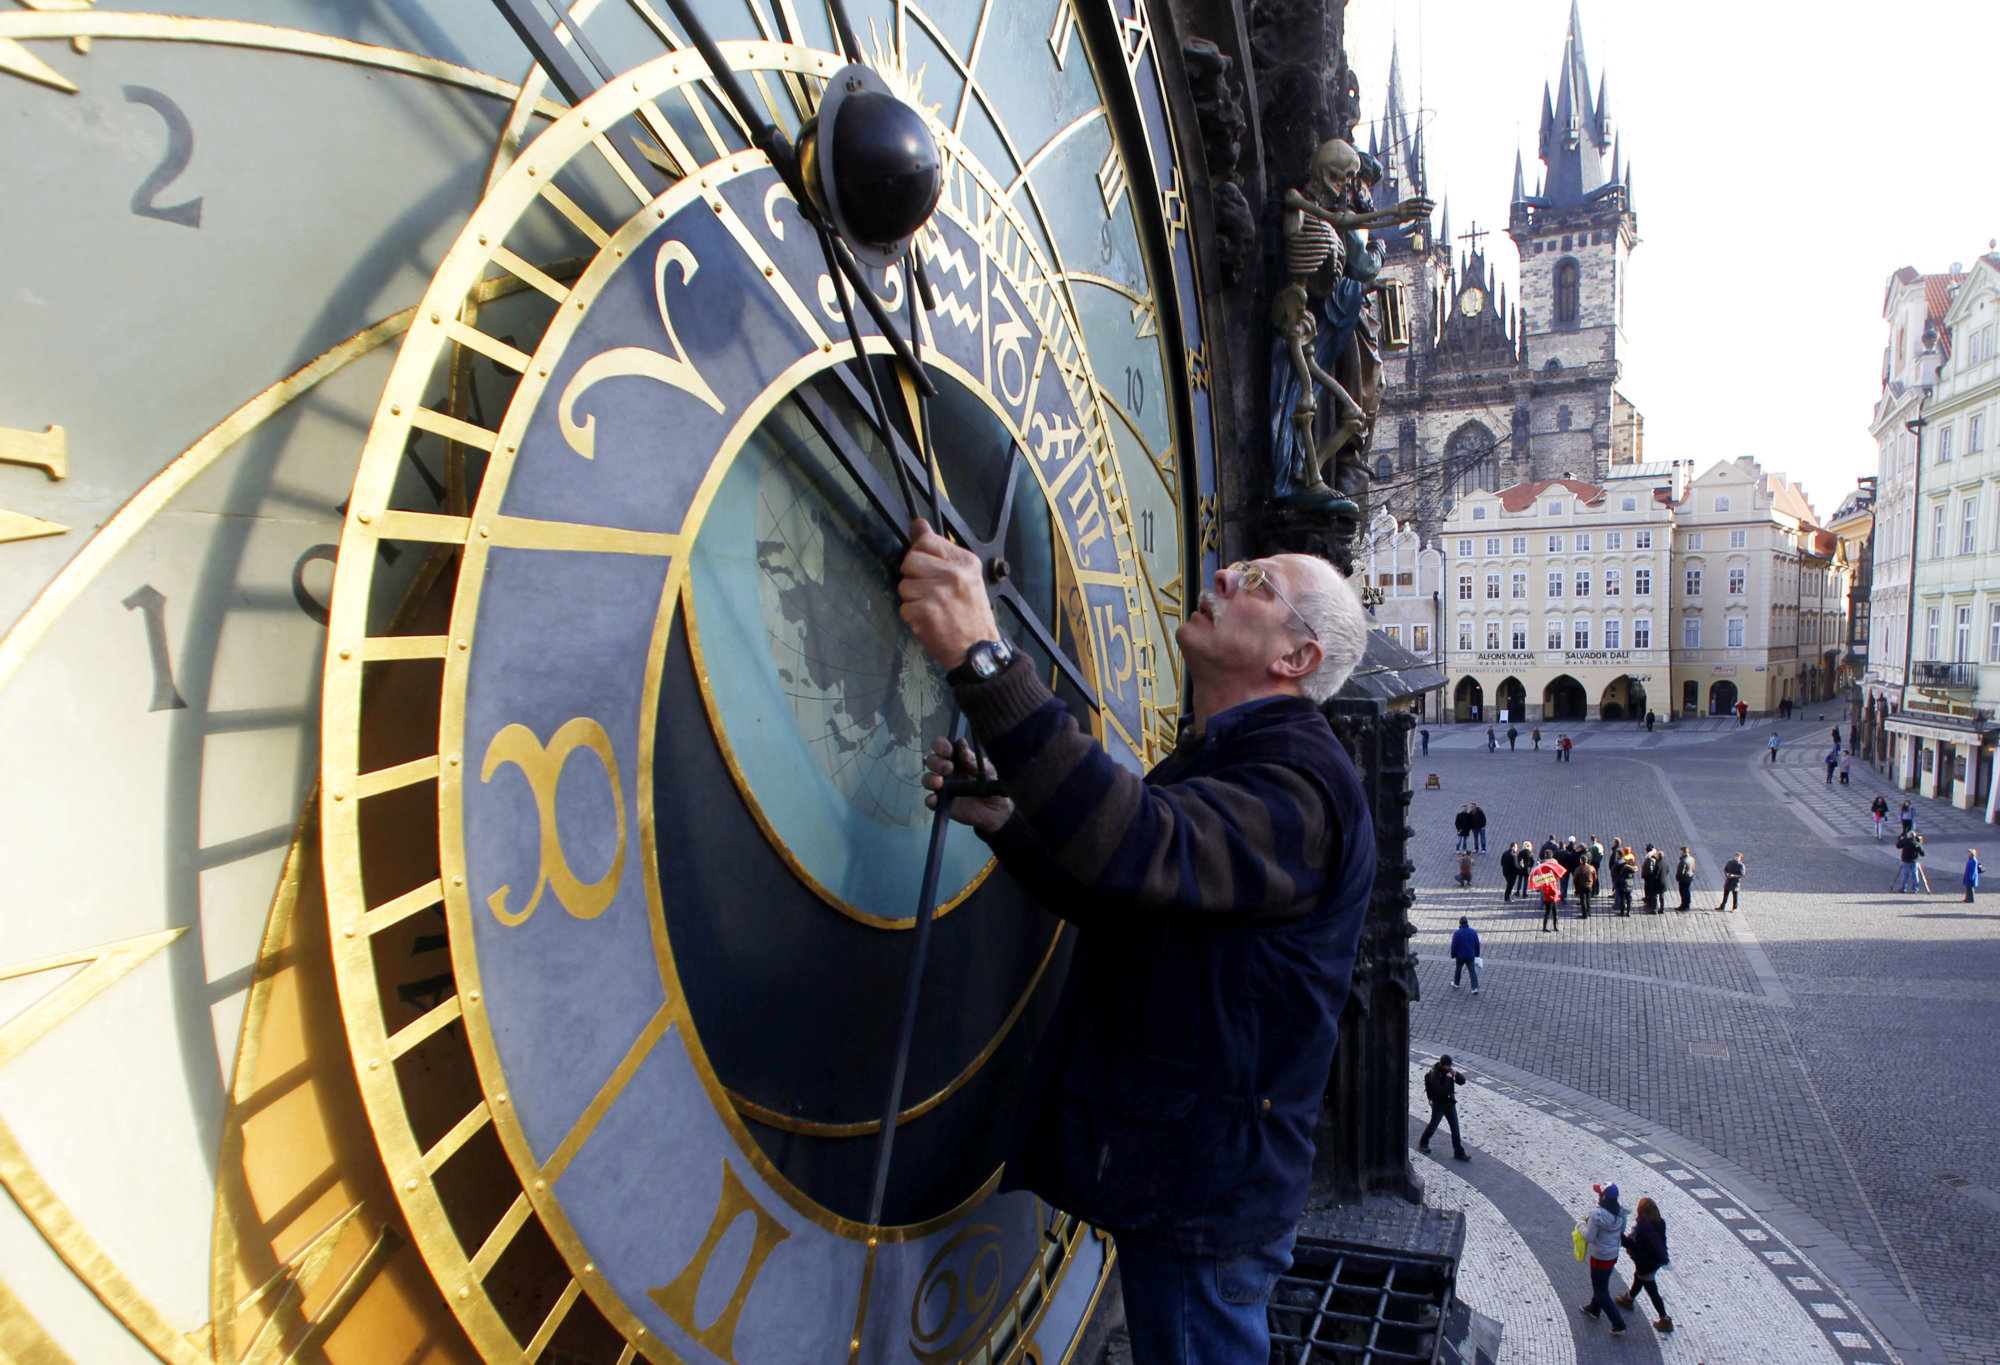 FILE - This Feb. 24, 2012 file photo shows Petr Skala performing his weekly maintenance of the famous Astronomical clock at the Old Town Square in Prague, Czech Republic. The clock was first installed in 1410, making it the third-oldest astronomical clock in the world and it is supposed to be  the oldest one still working. (AP Photo/Petr David Josek)